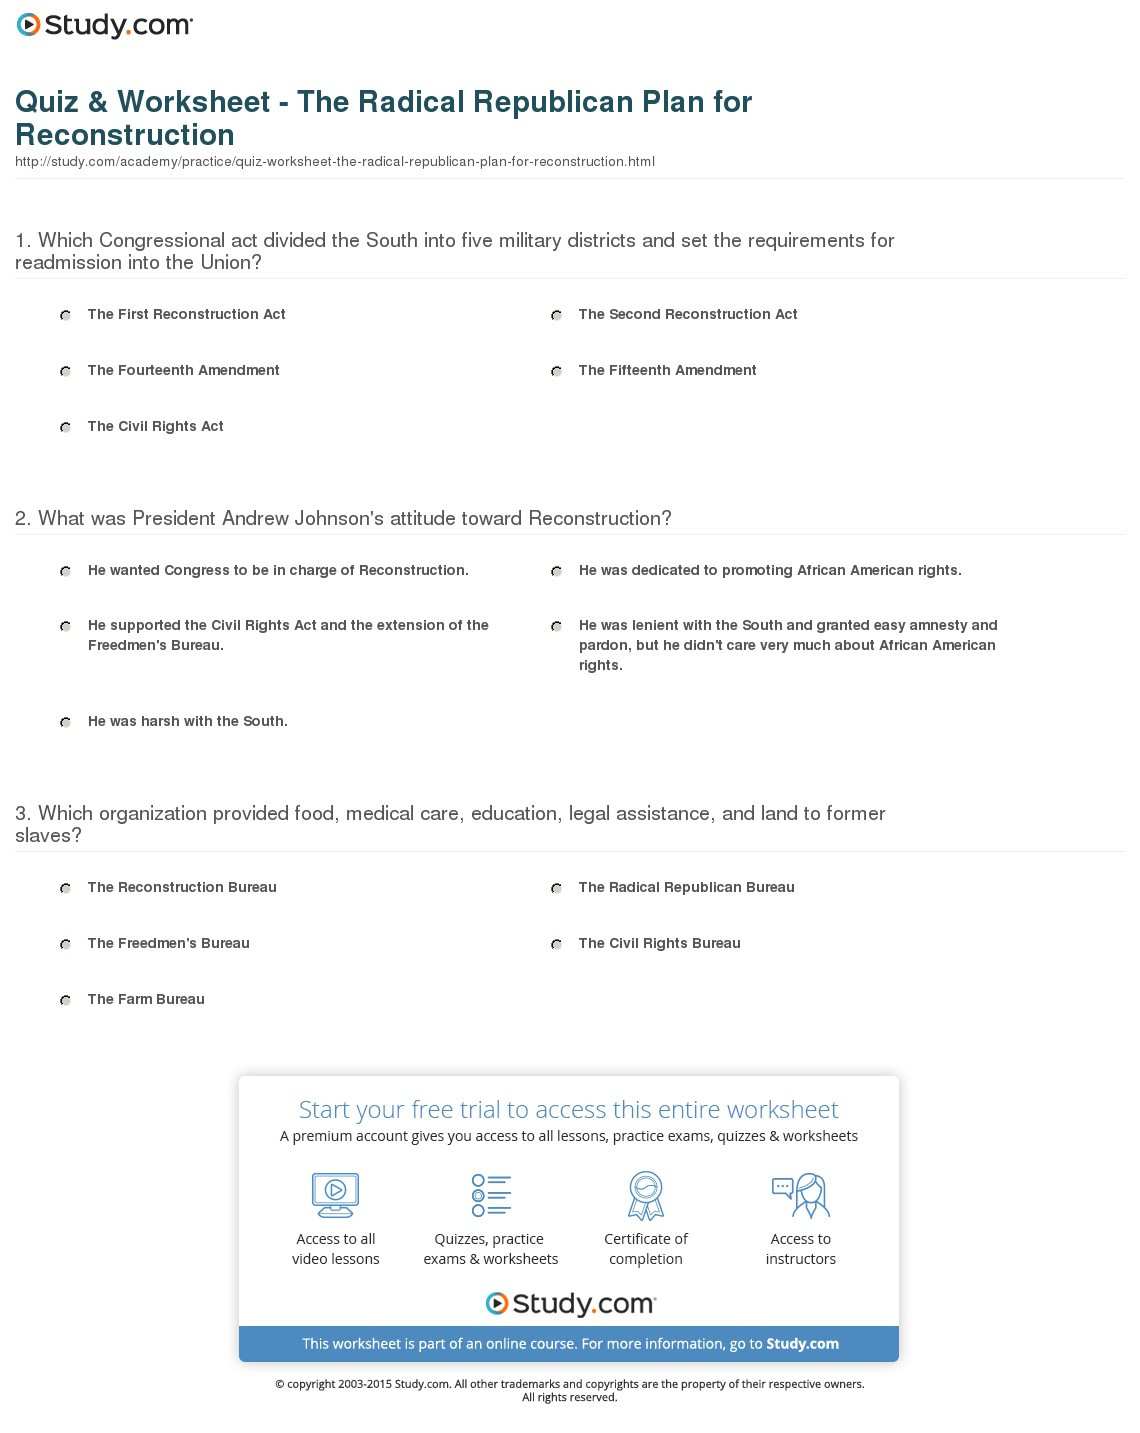 Radical Republican Reconstruction Worksheet Answers